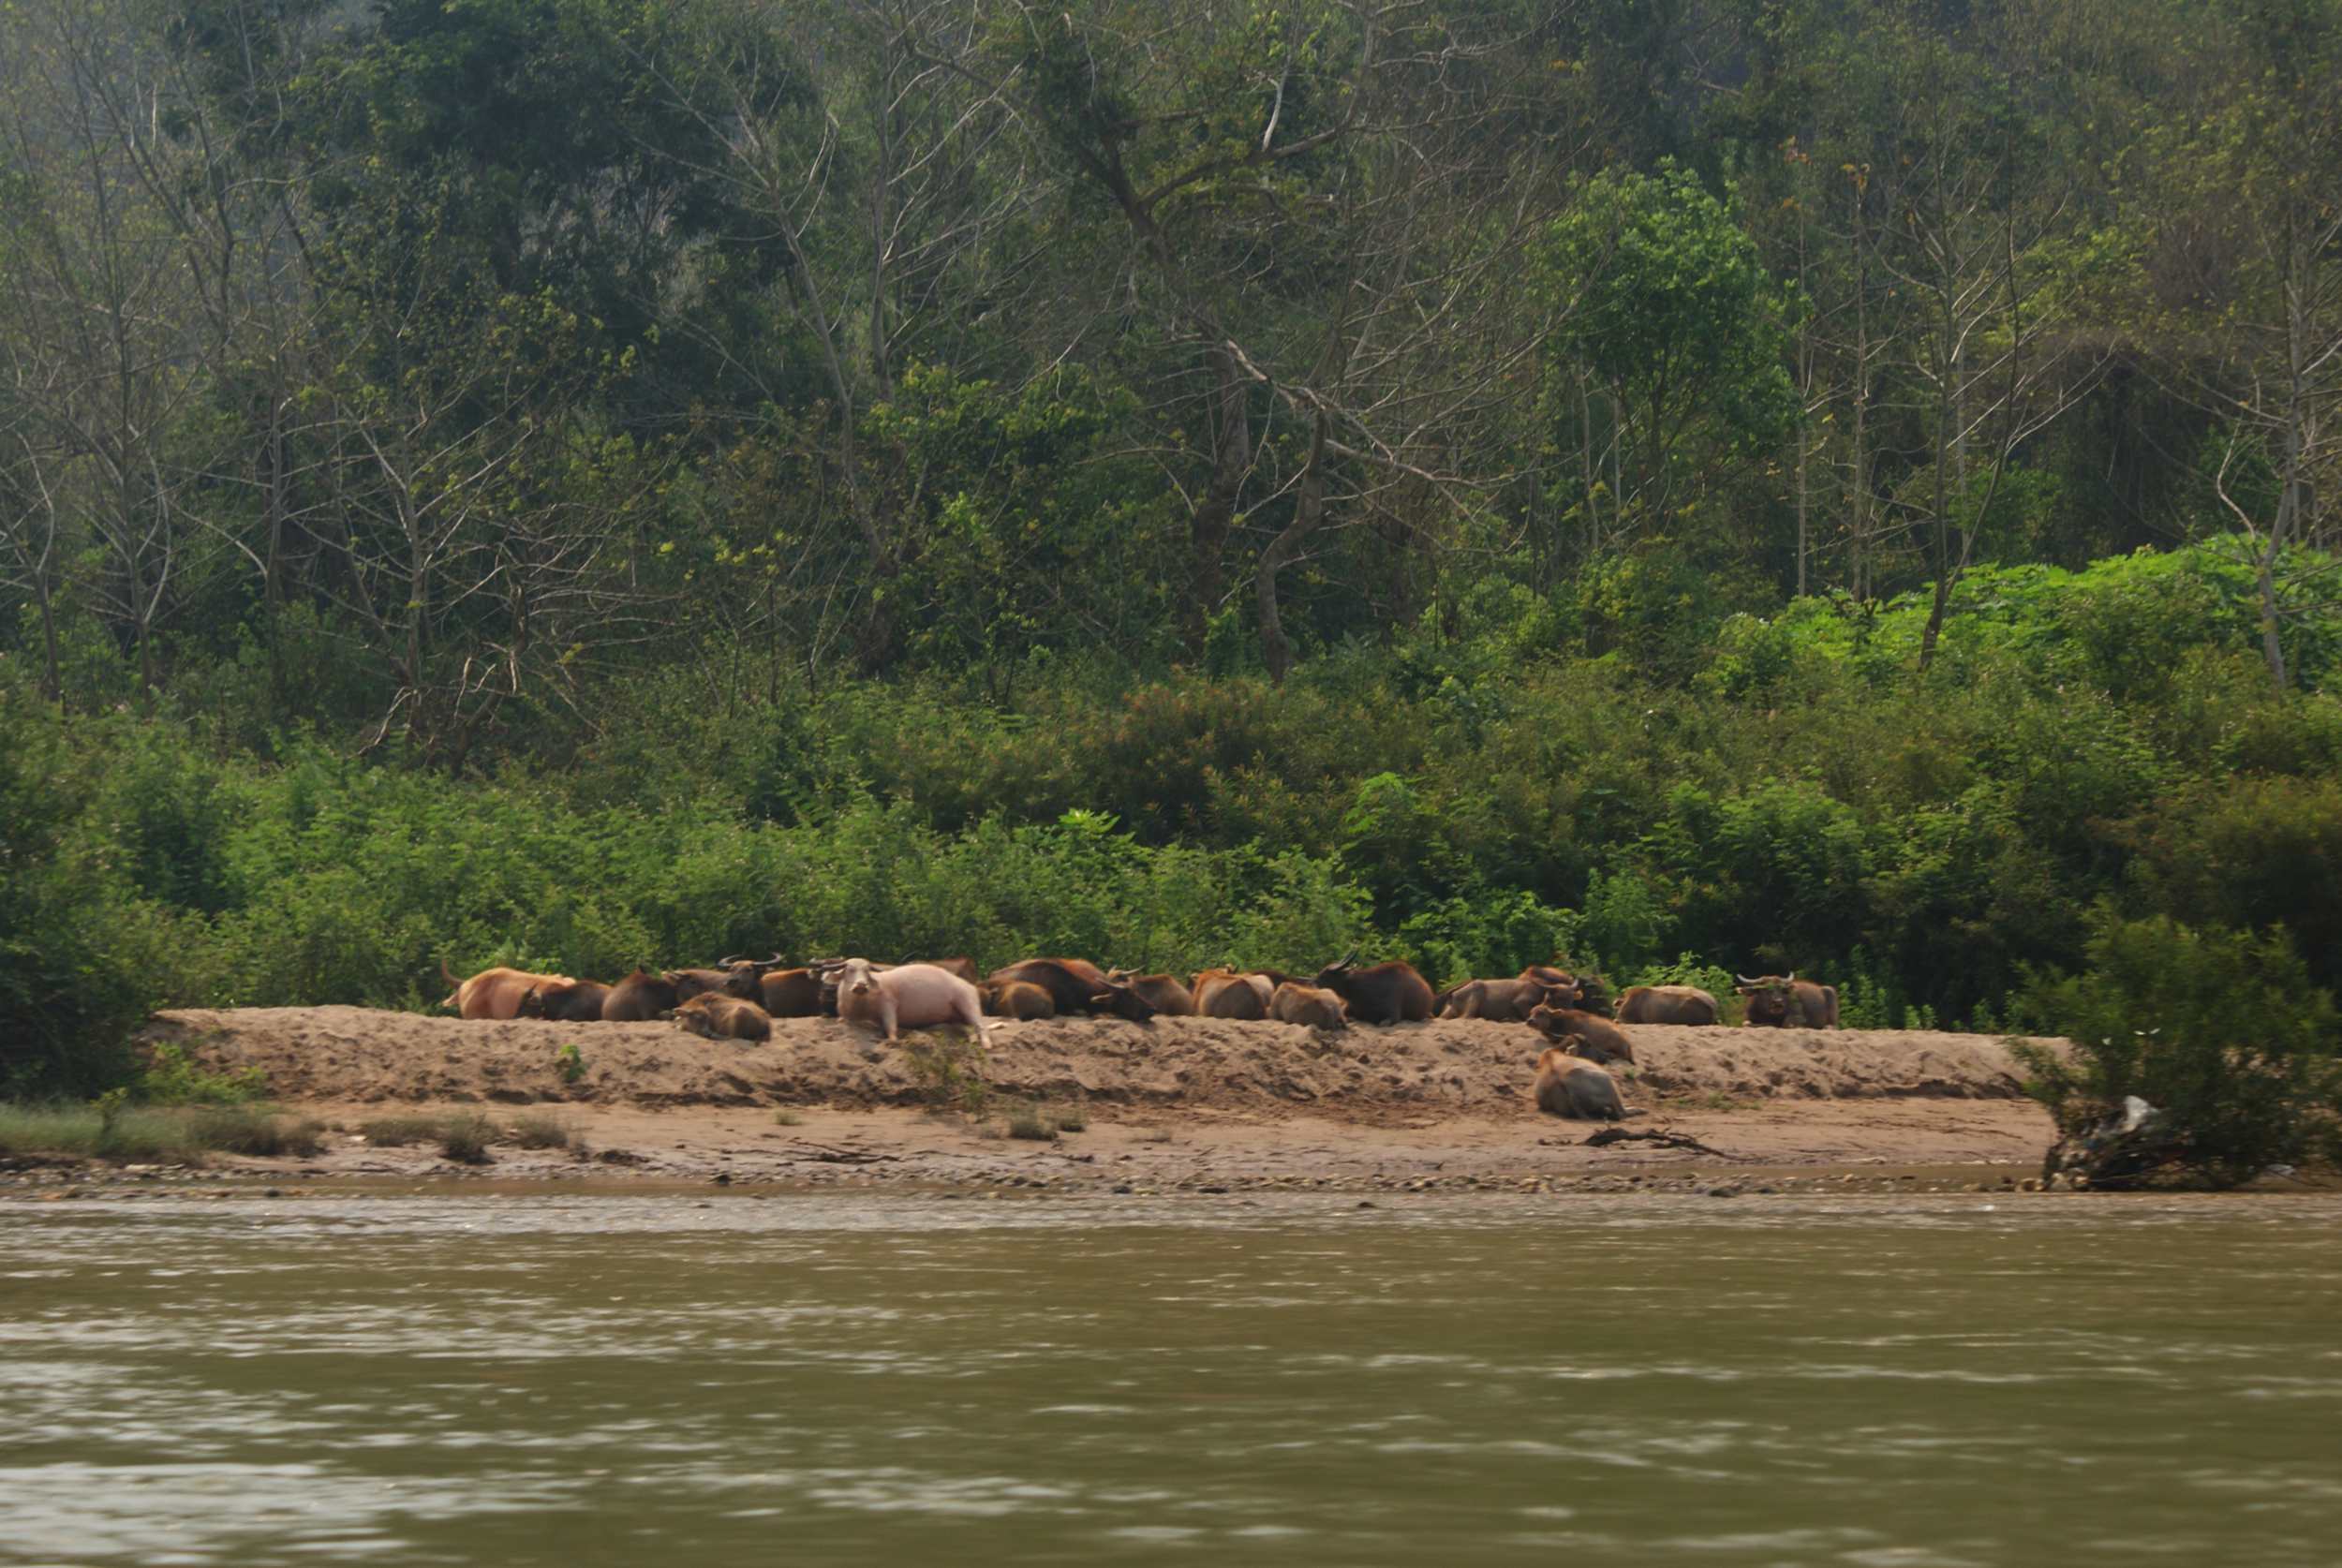 Water buffalo resting on the river bank